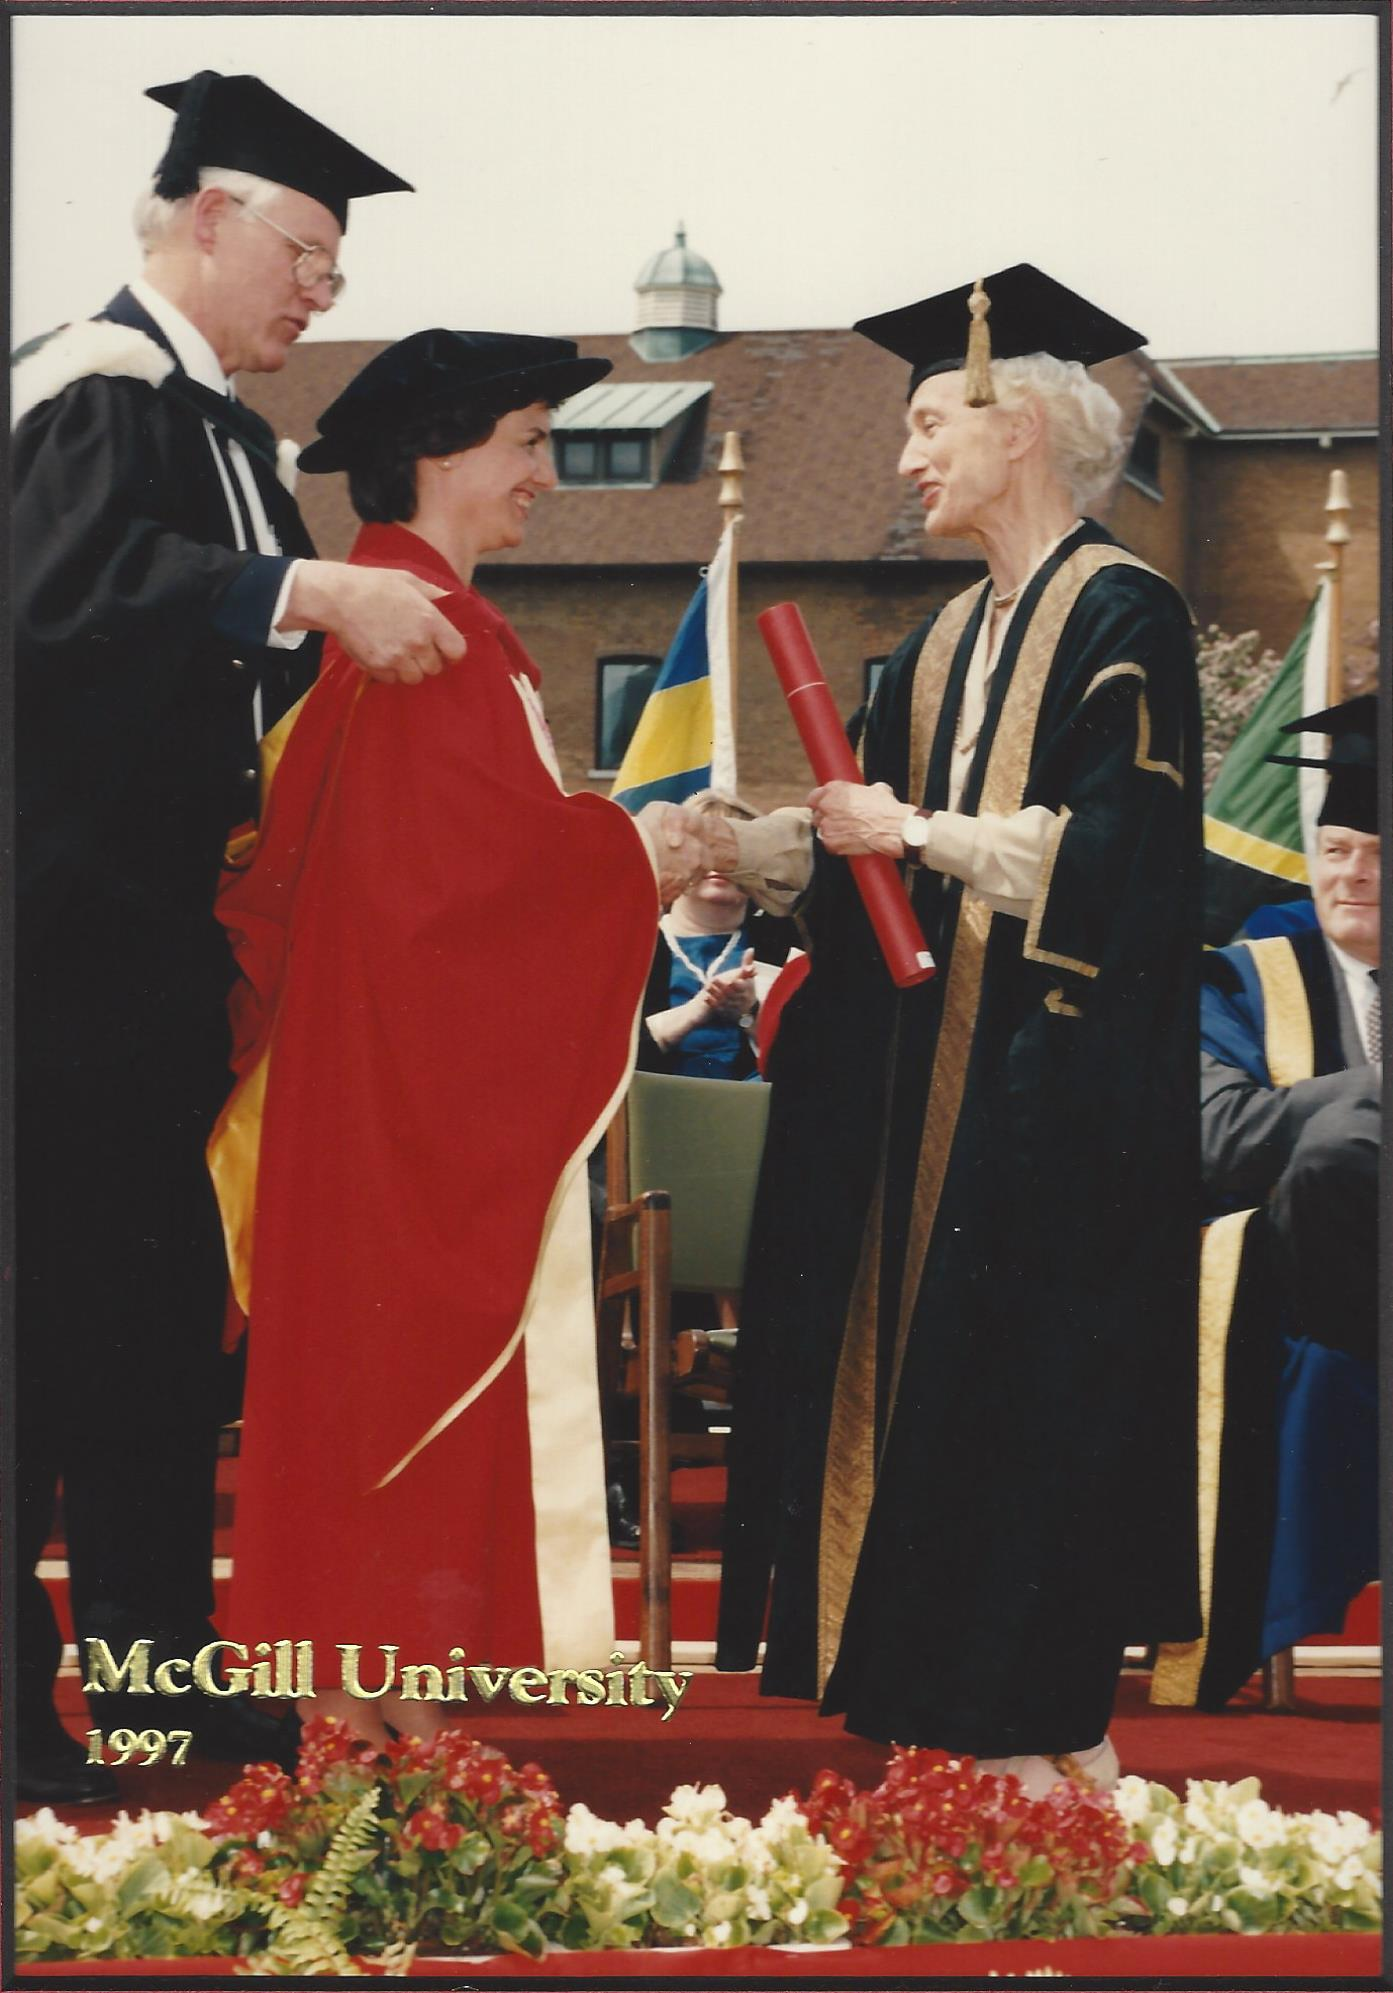 McGill University Honorary Degree (1997)